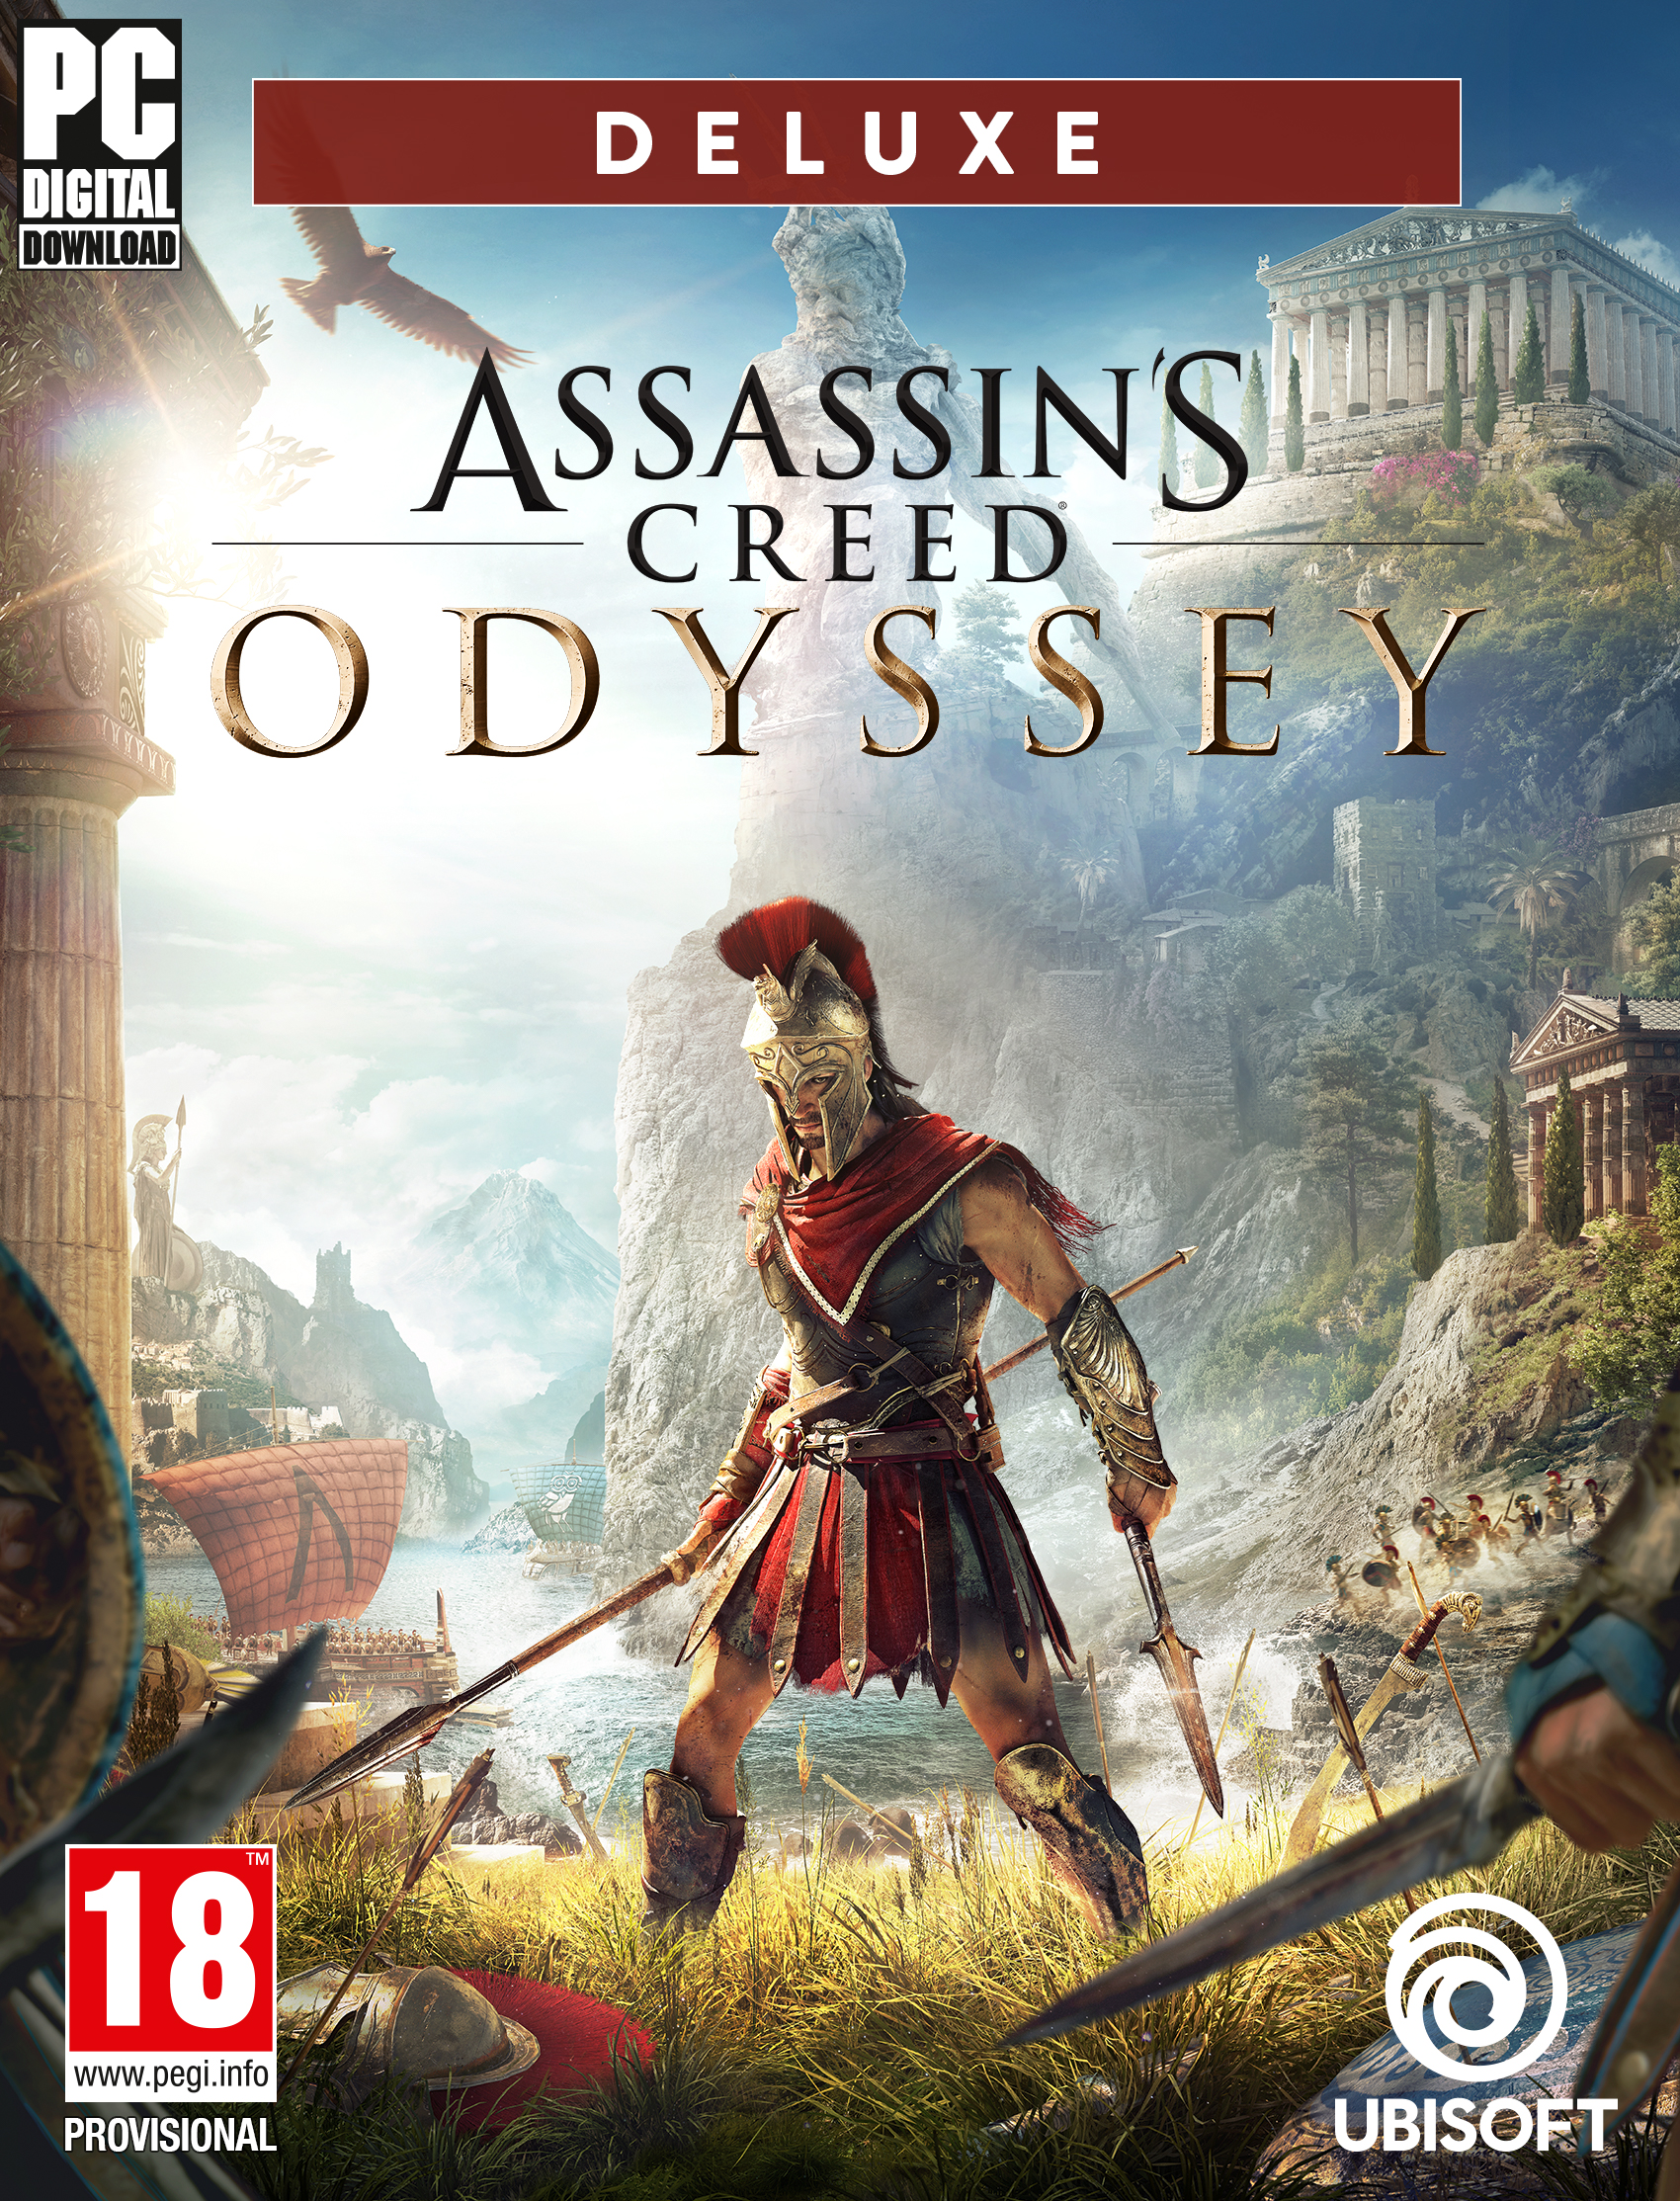 Assassin's Creed Odyssey – Deluxe Edition [PC Code – Ubisoft Connect]